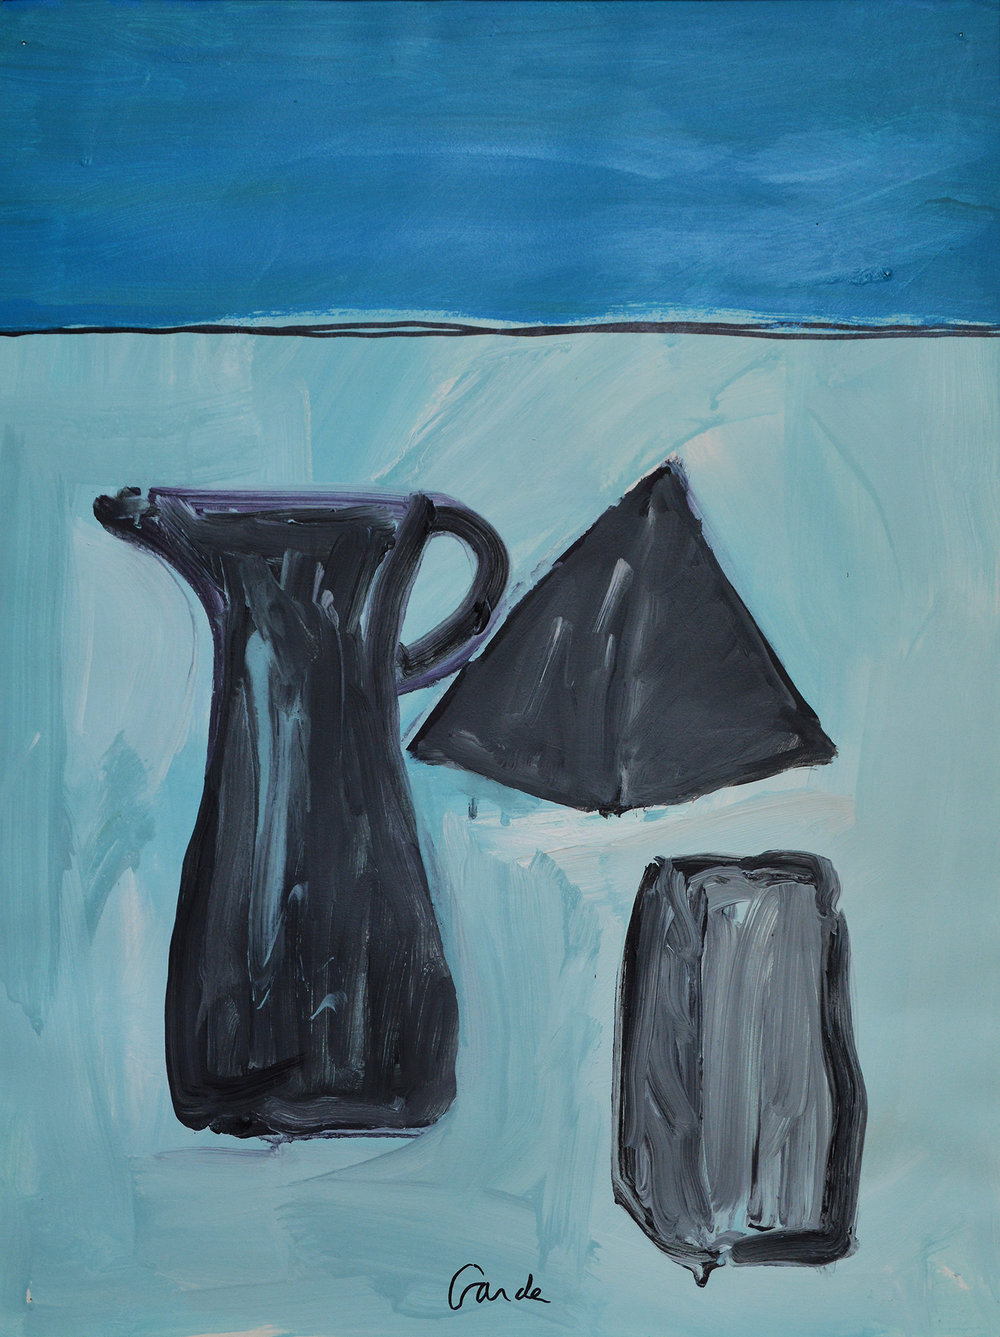 Vessels with Pyramid. 2002. Acrylic on paper, 26 x 19 in. (66 x 48cm.)